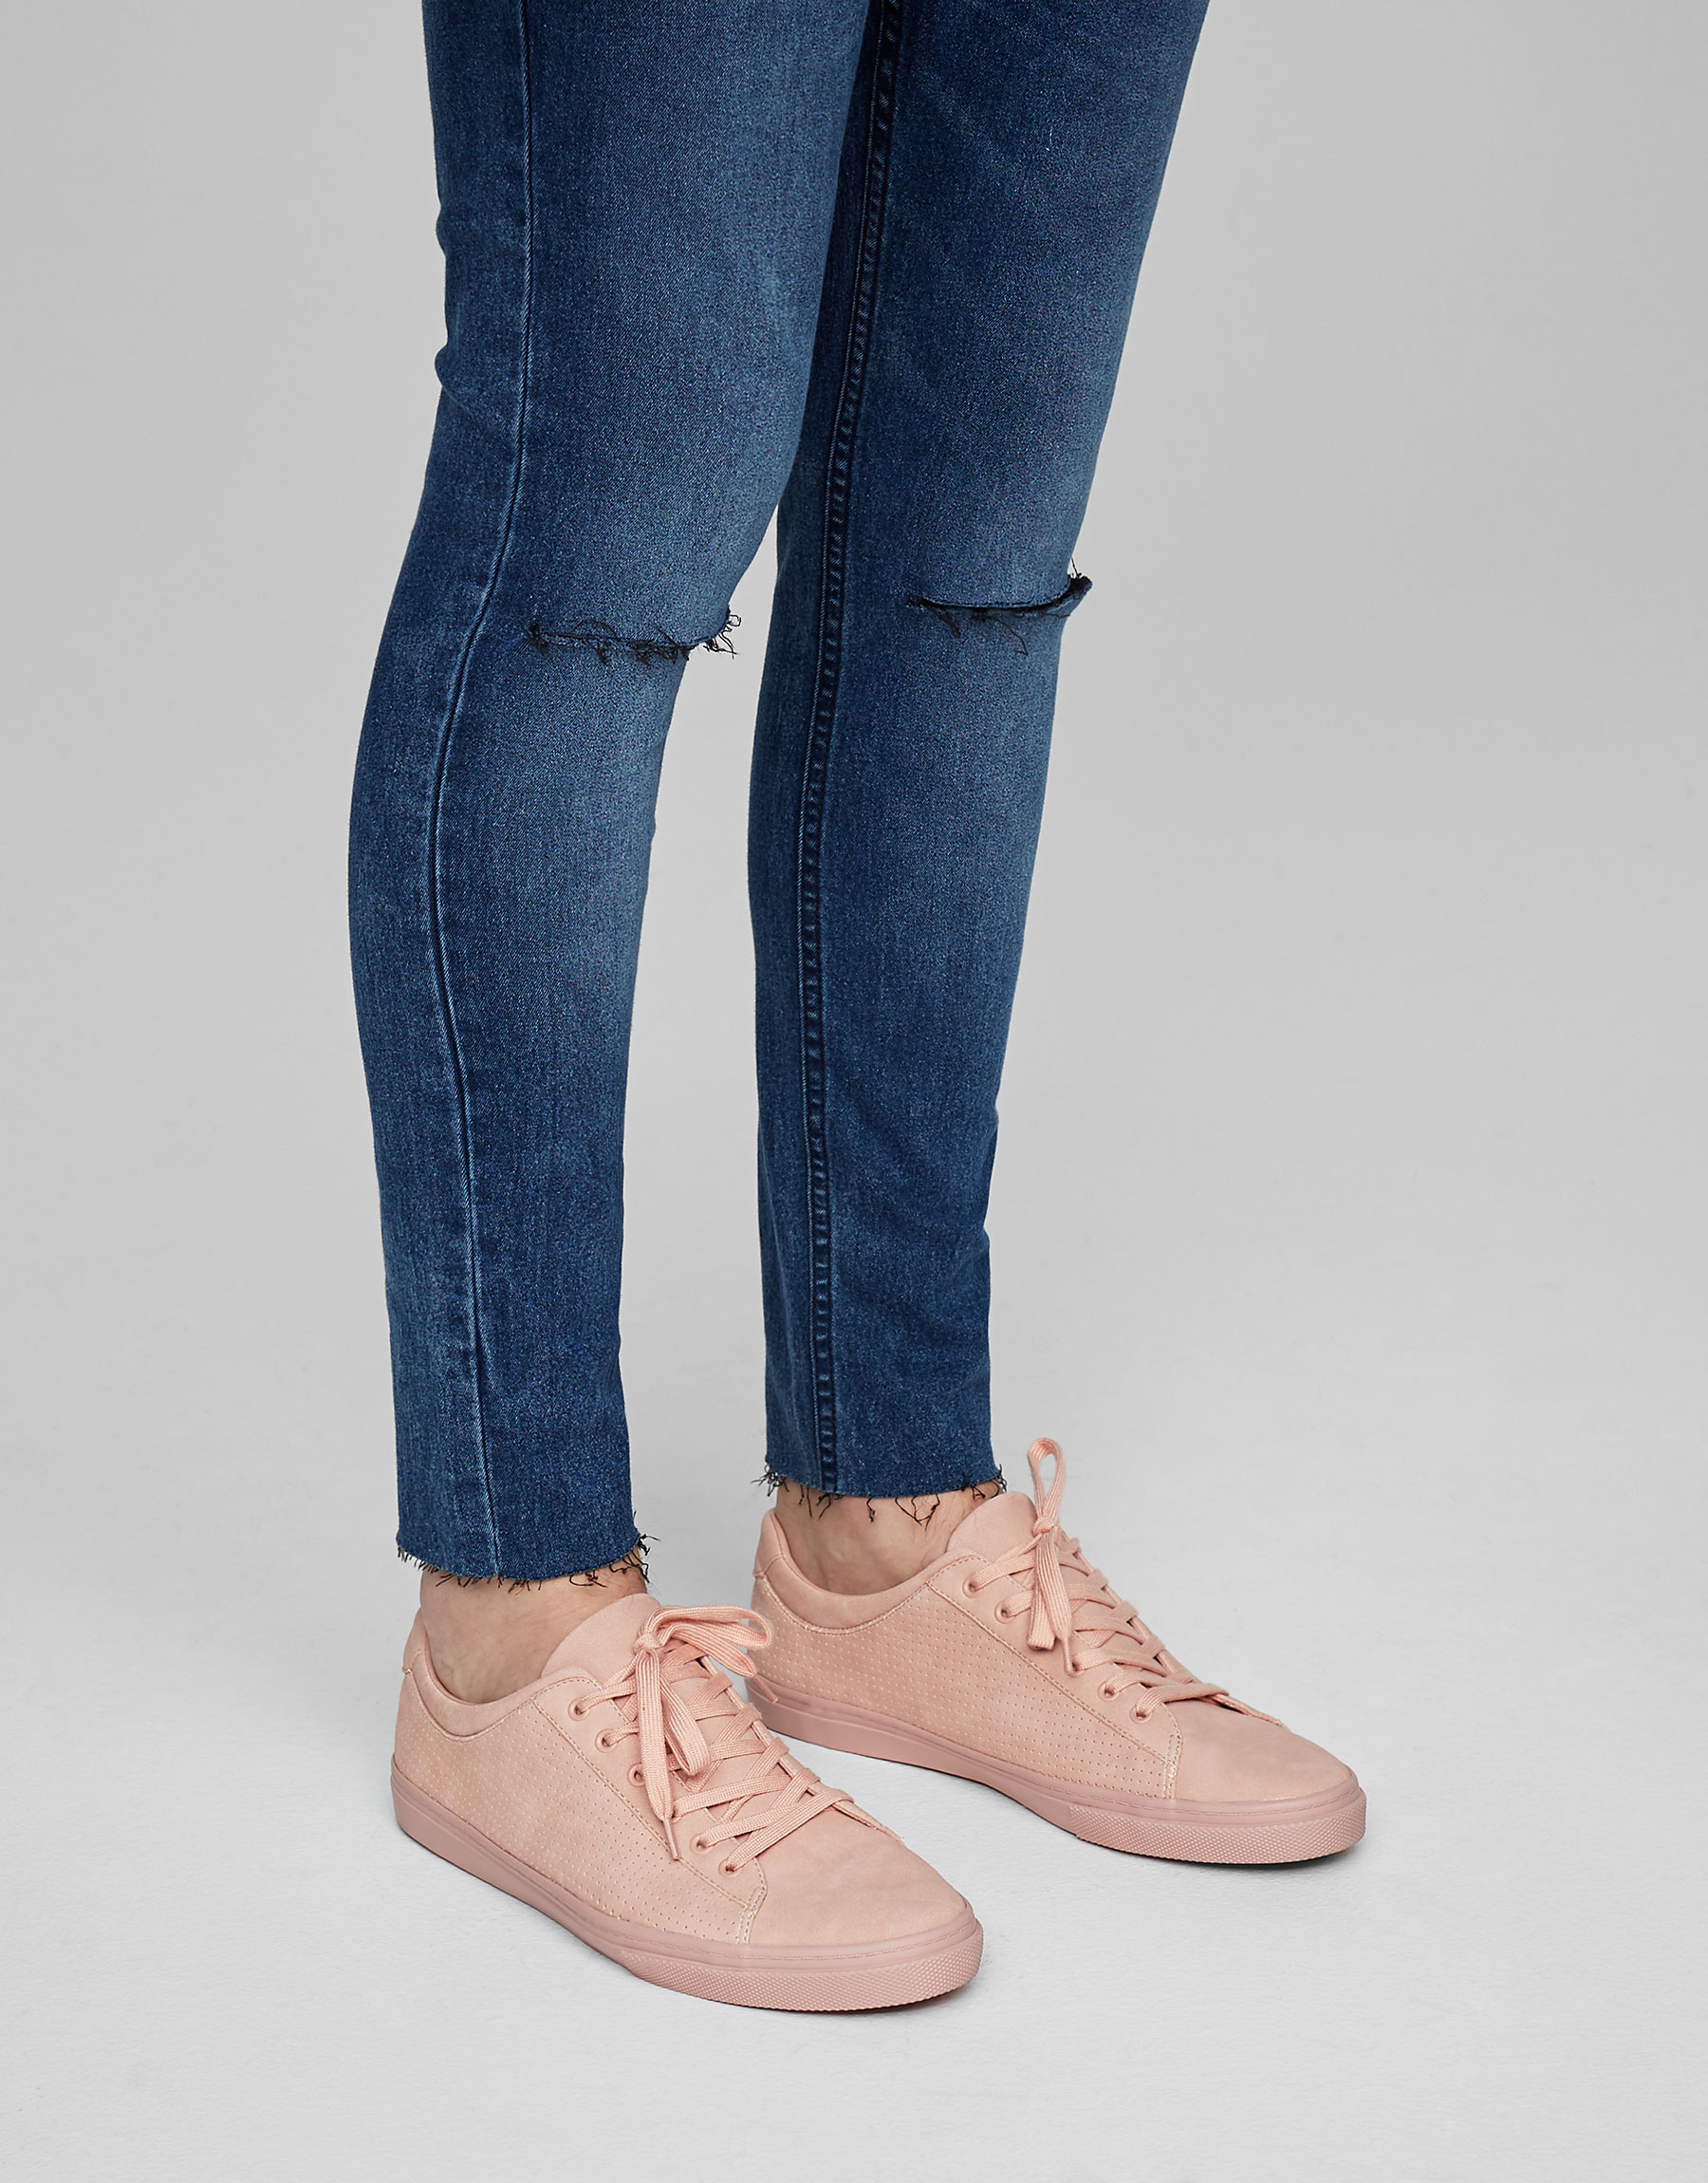 Pink plimsolls with brogueing